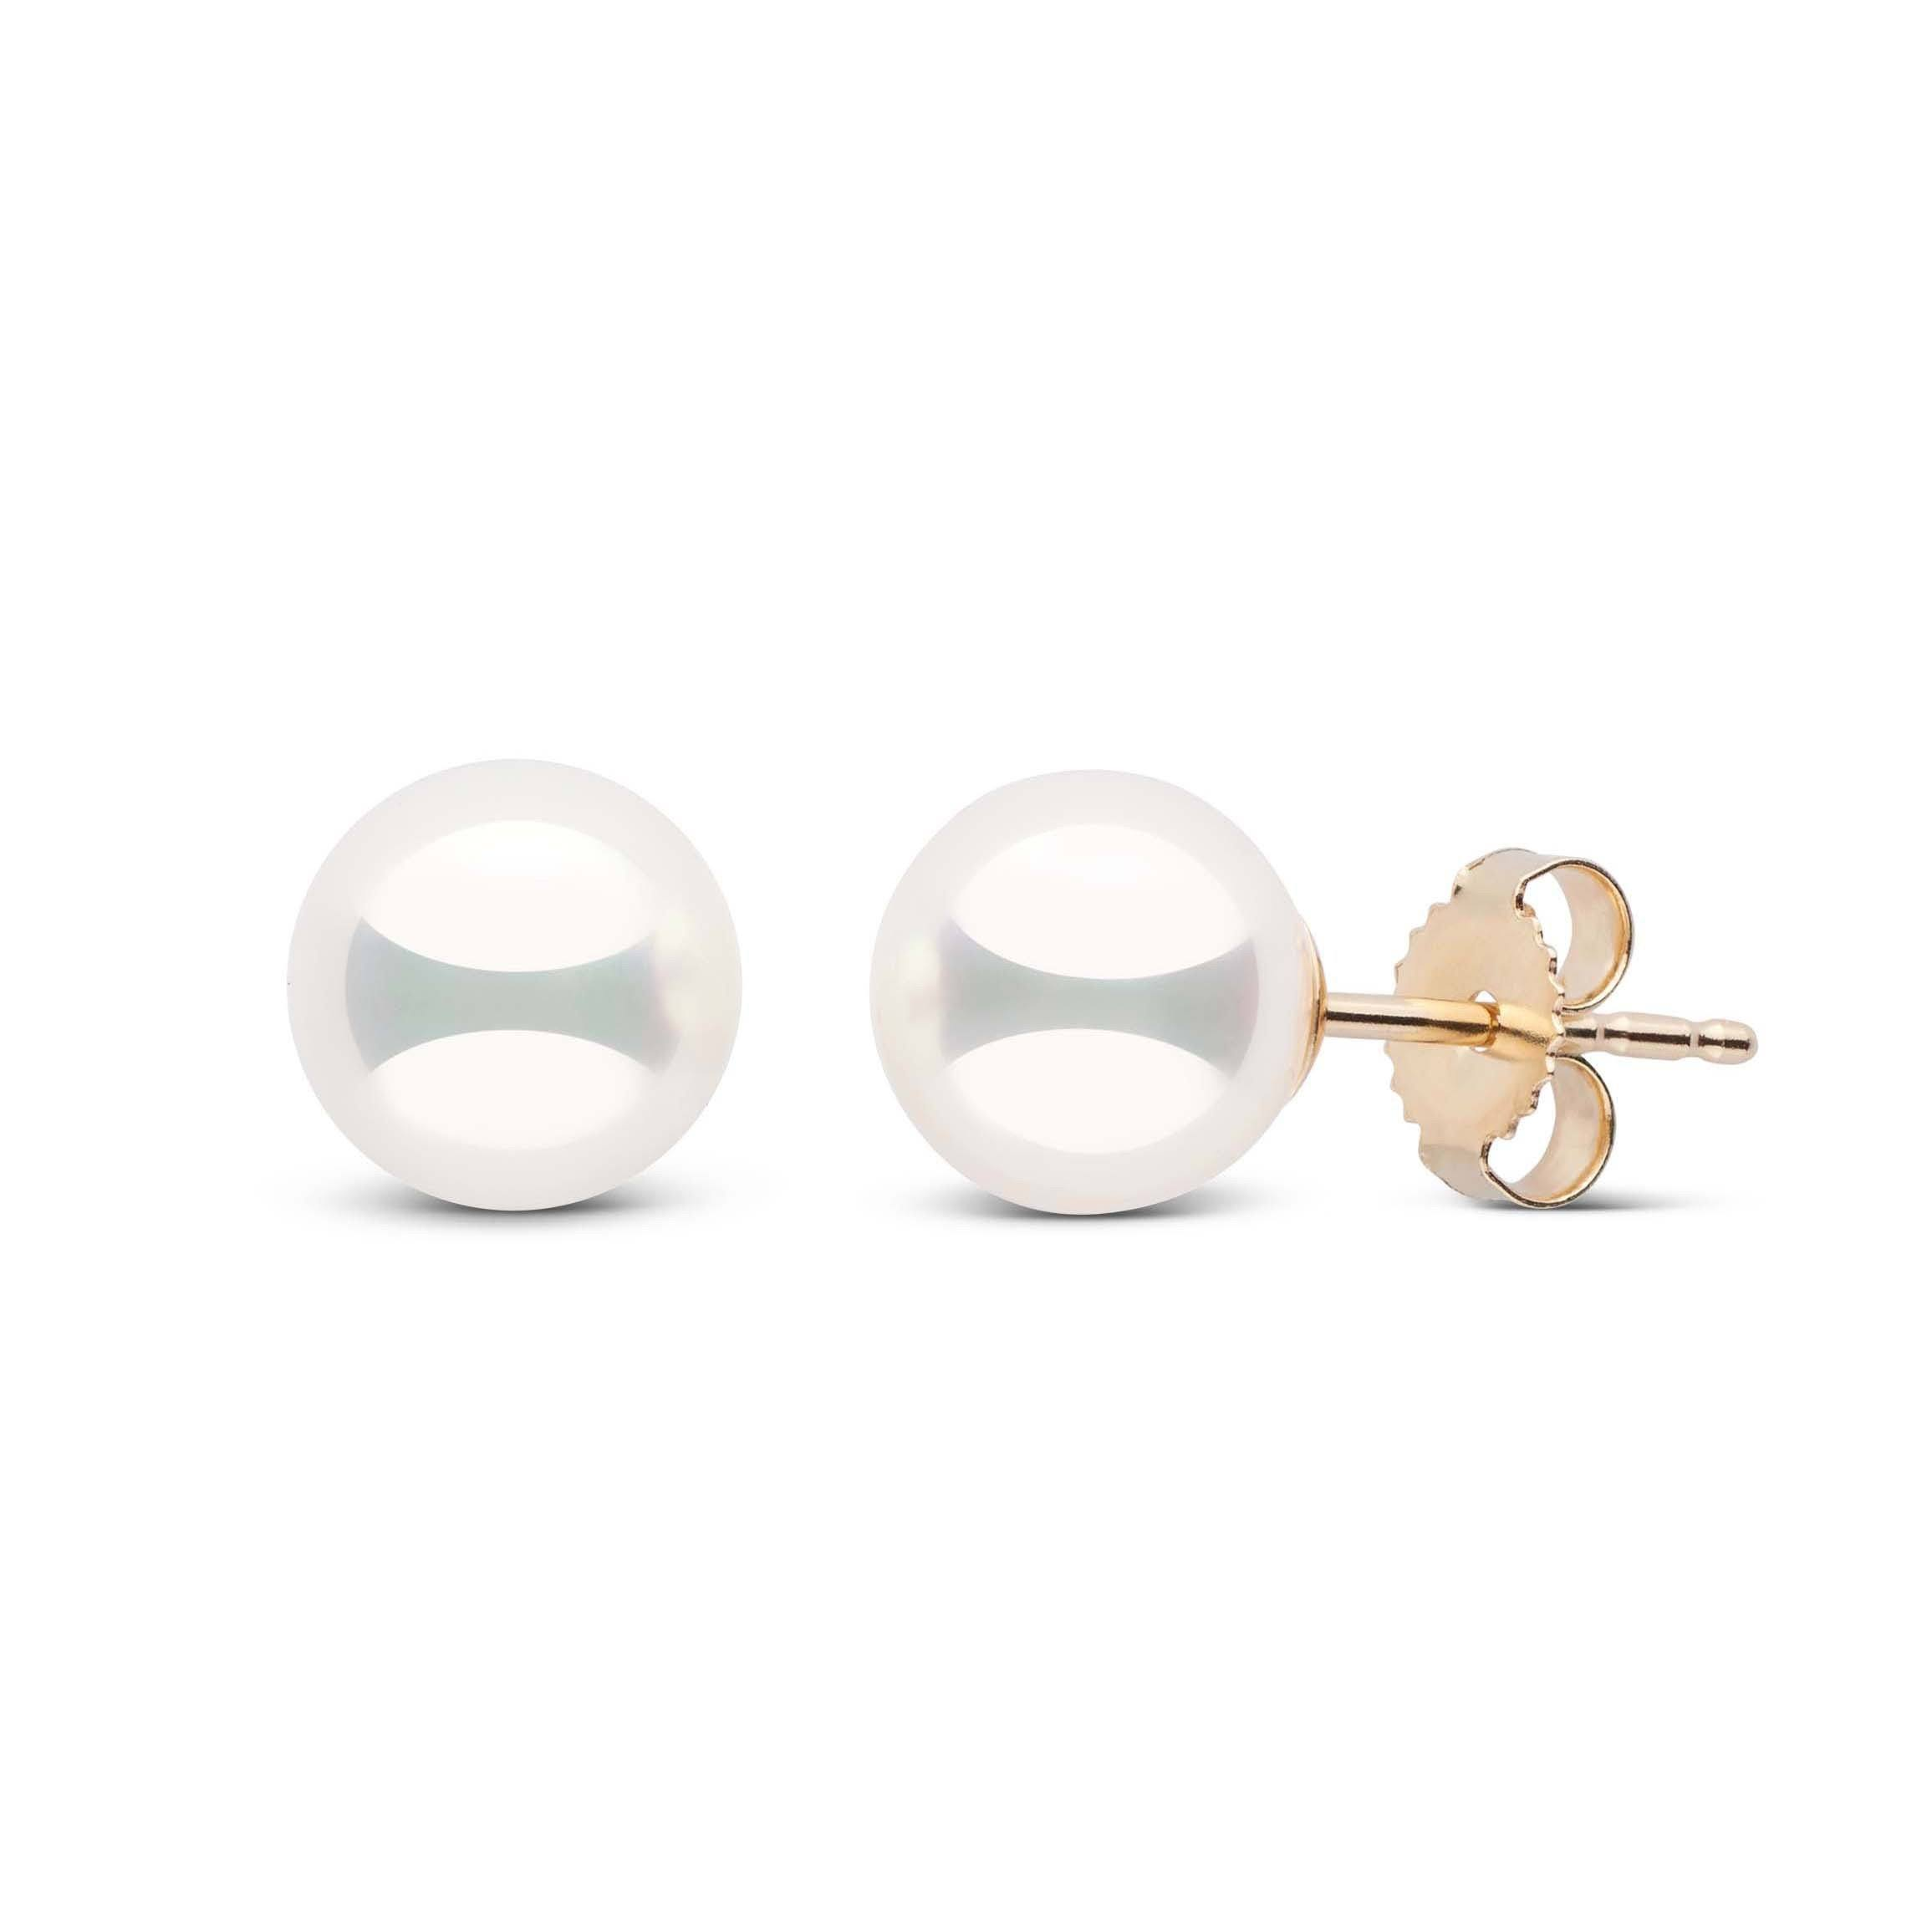 7.0-7.5 mm Natural White Hanadama Pearl Earrings